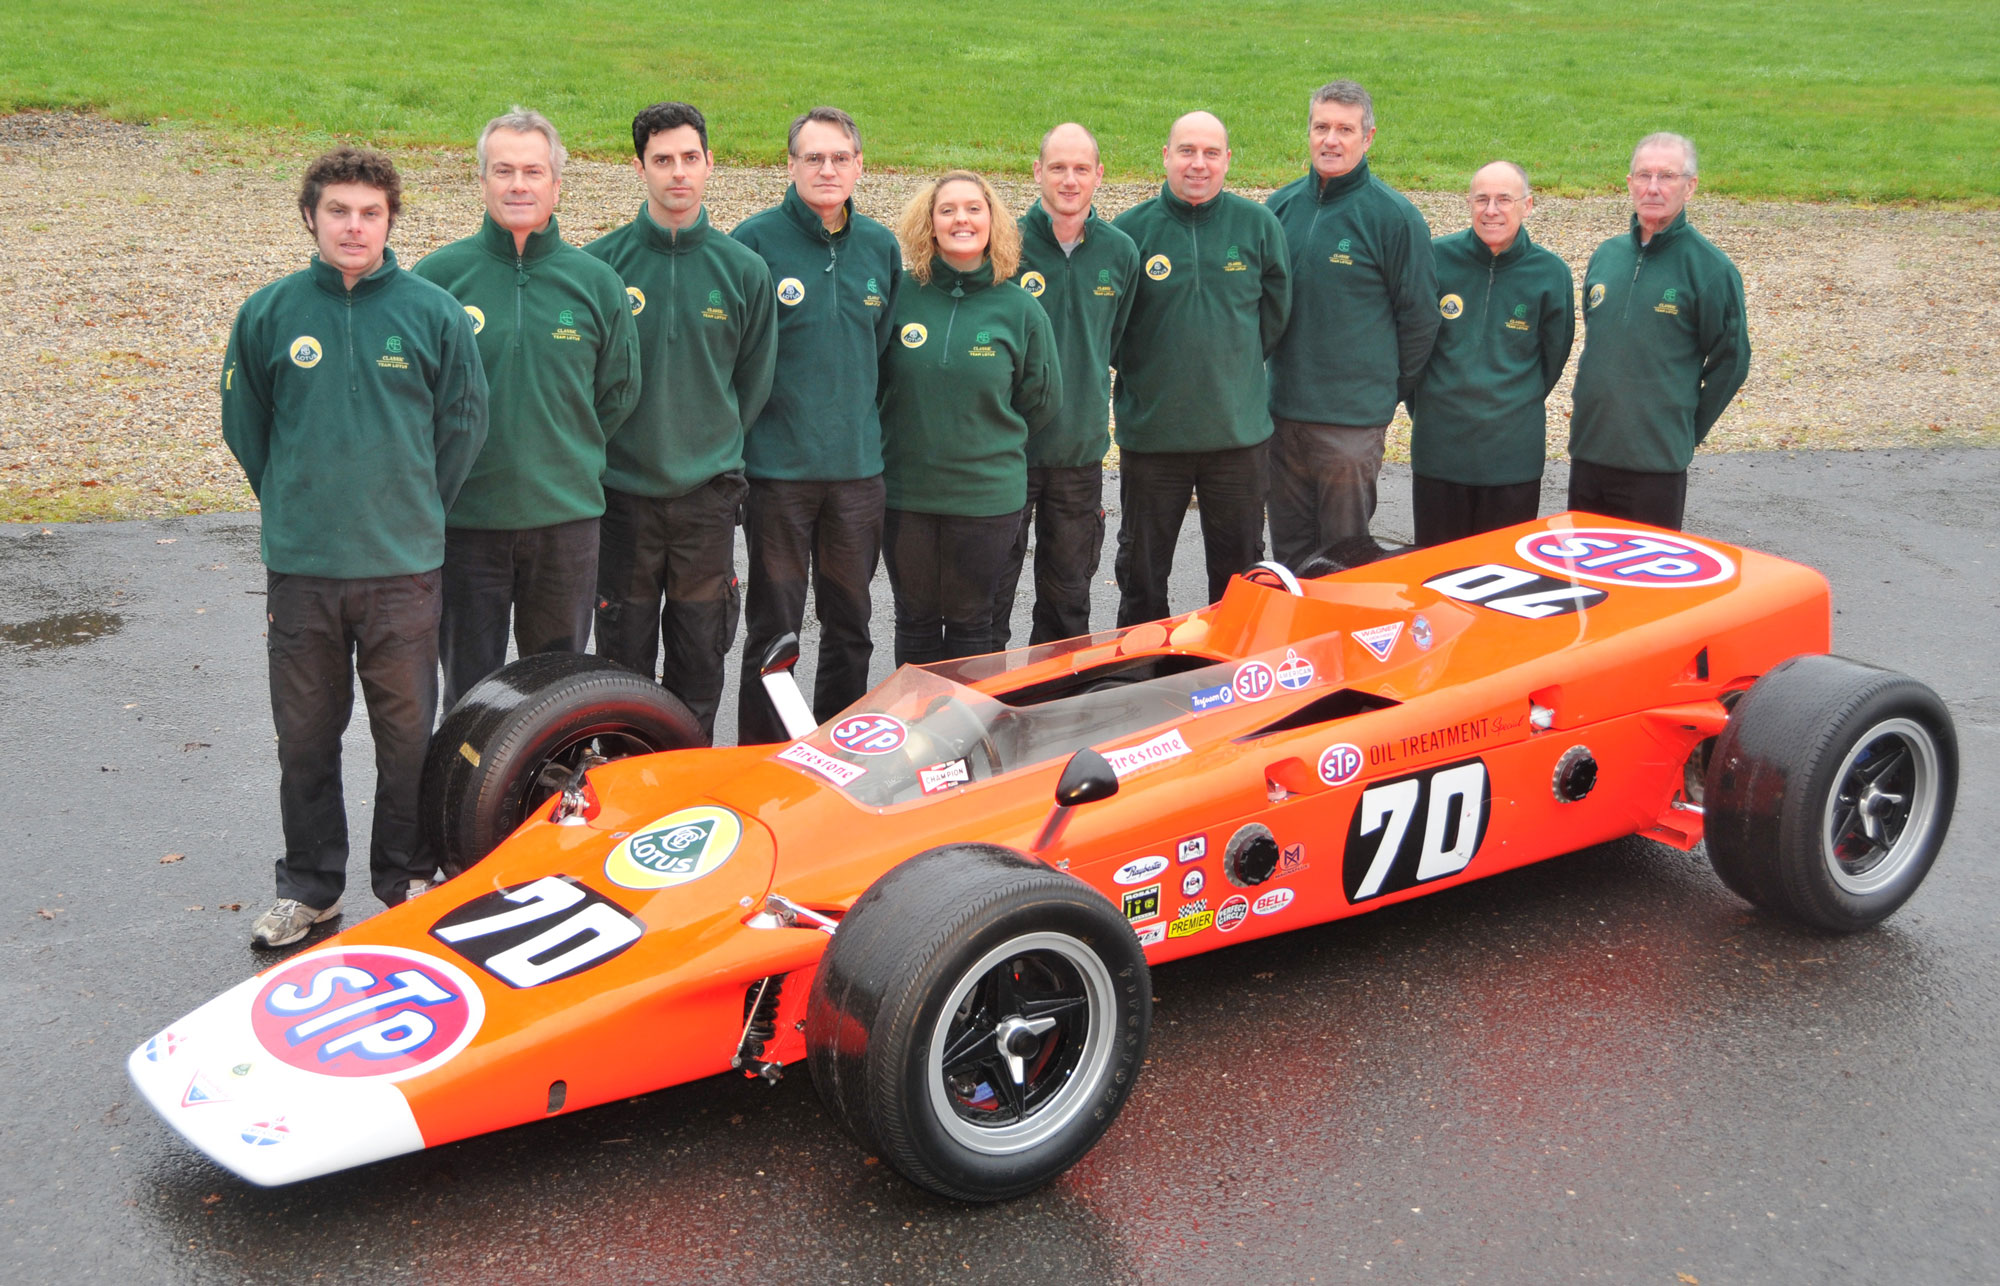 Look what Classic Team Lotus got for Christmas!